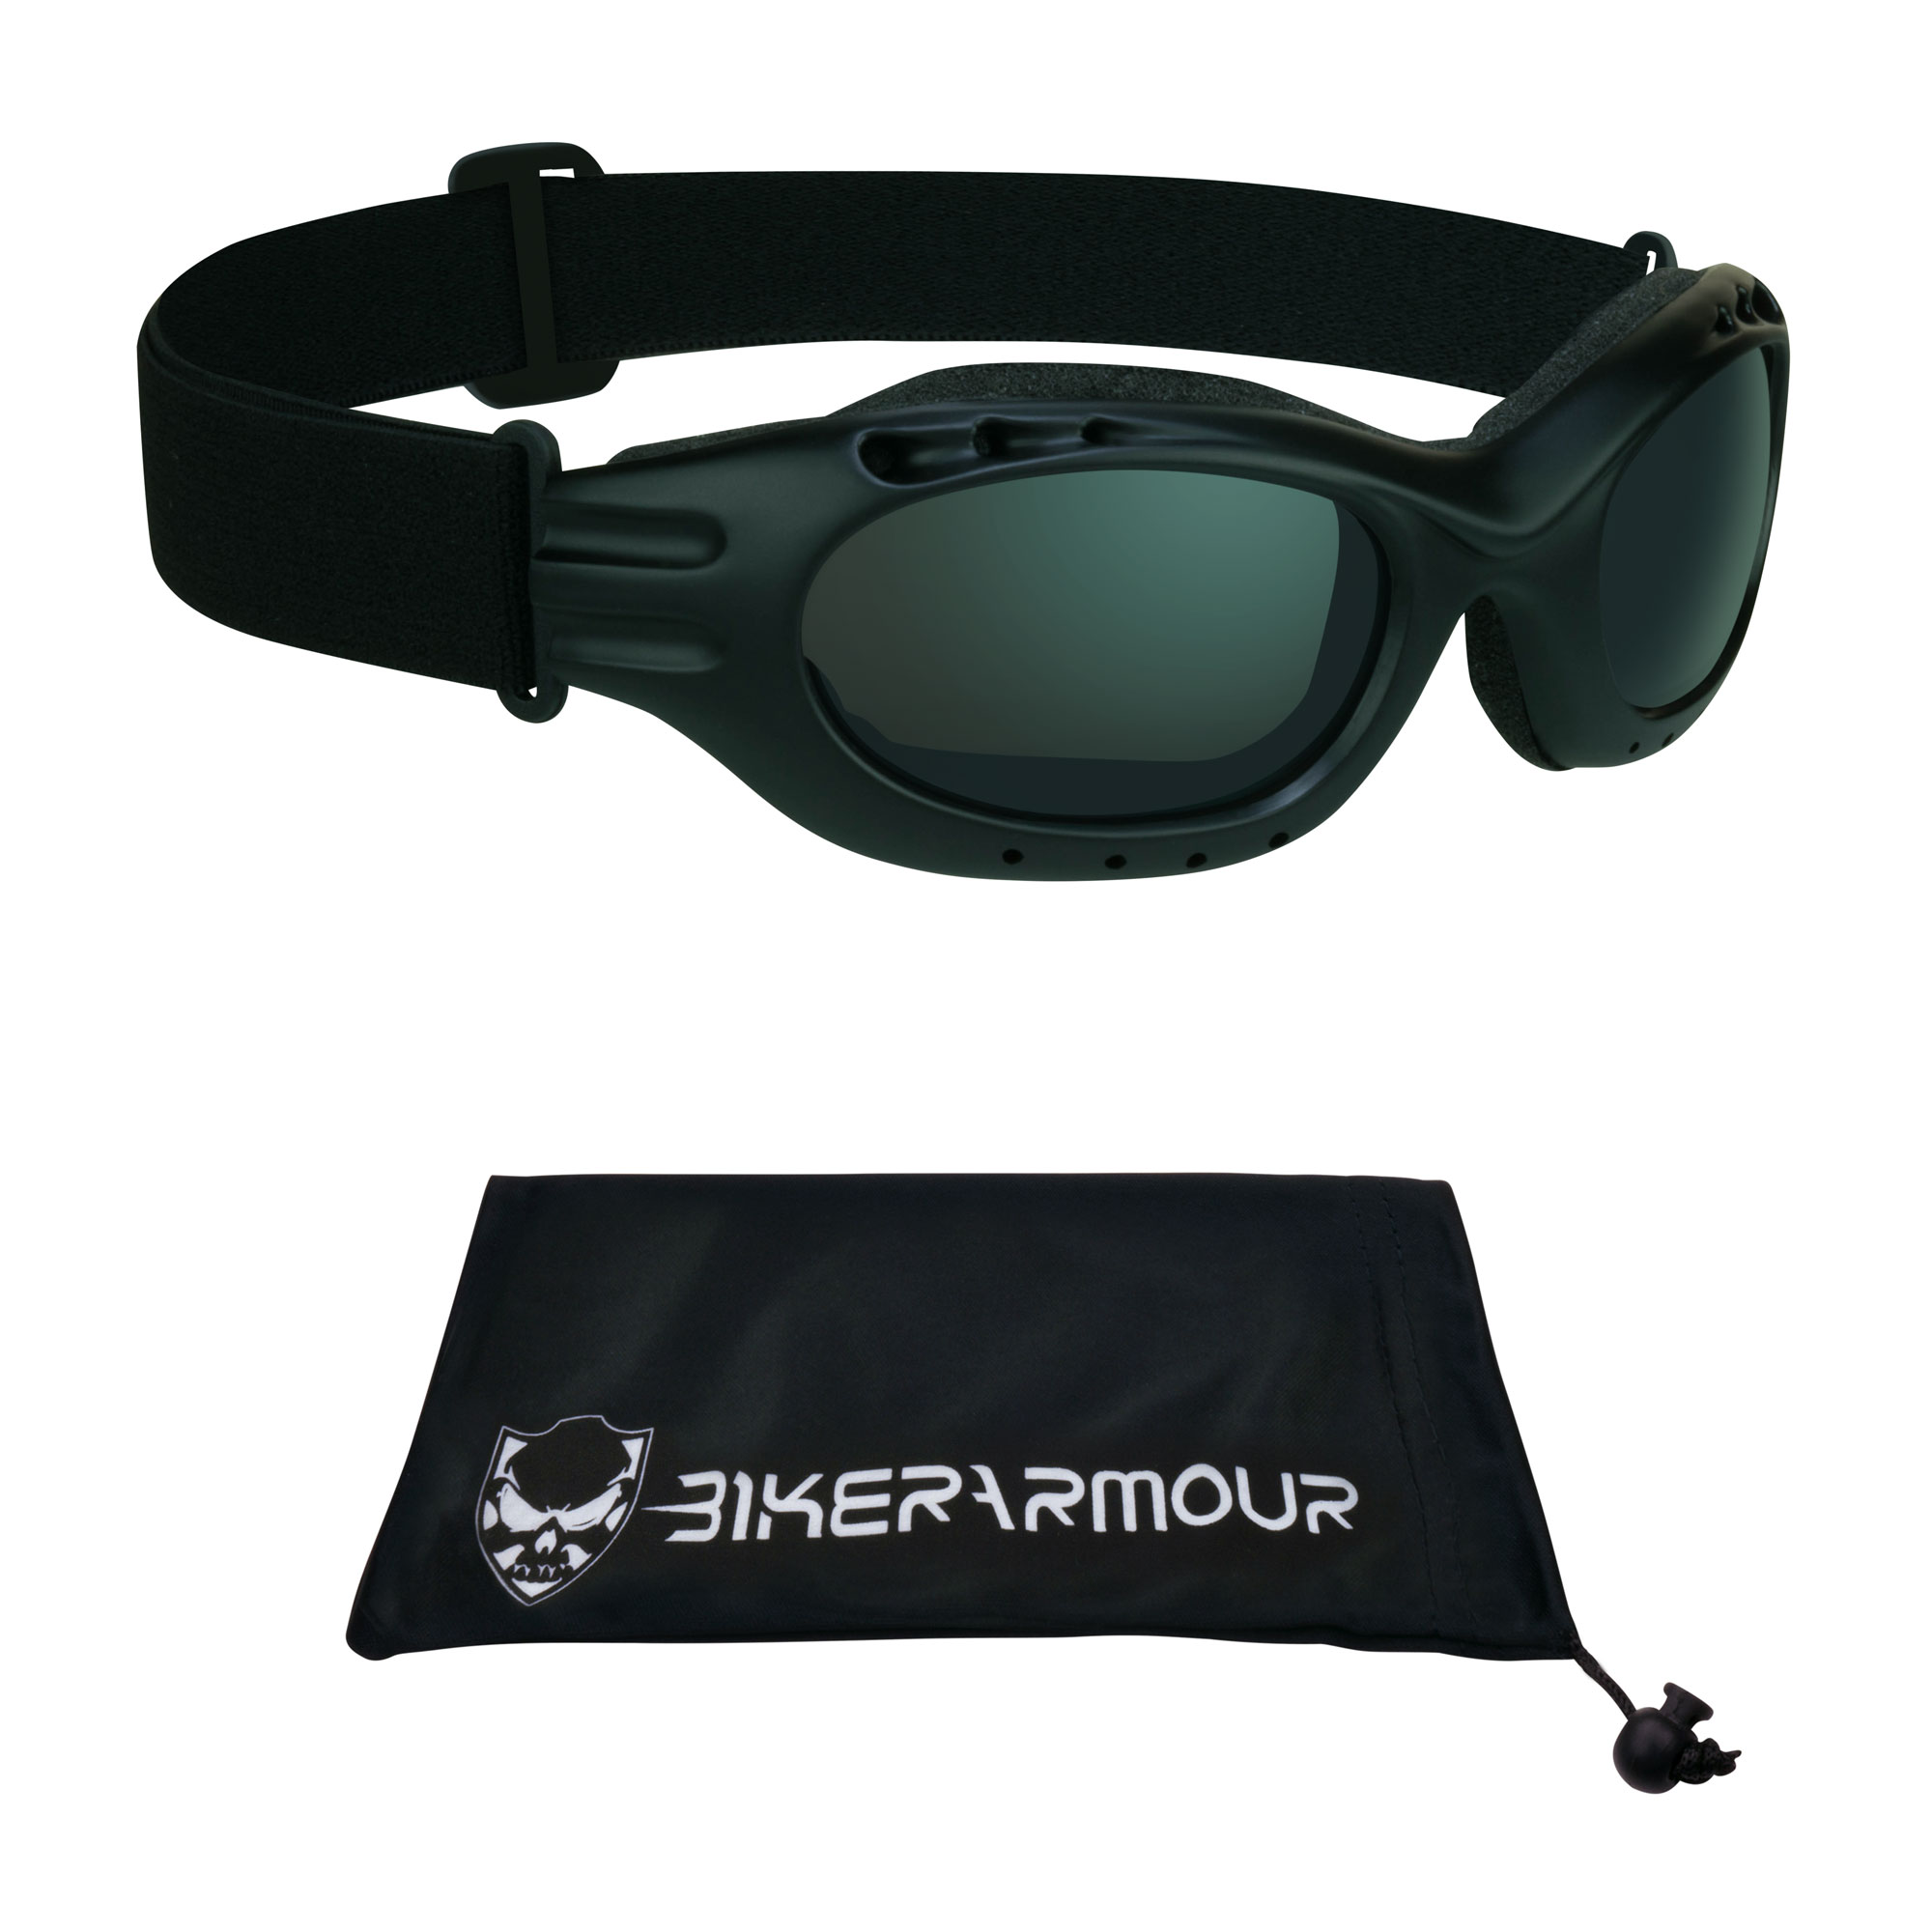 Motorcycle Riding Goggles. Great for Biker Riding, Skiing and Snowboarding.